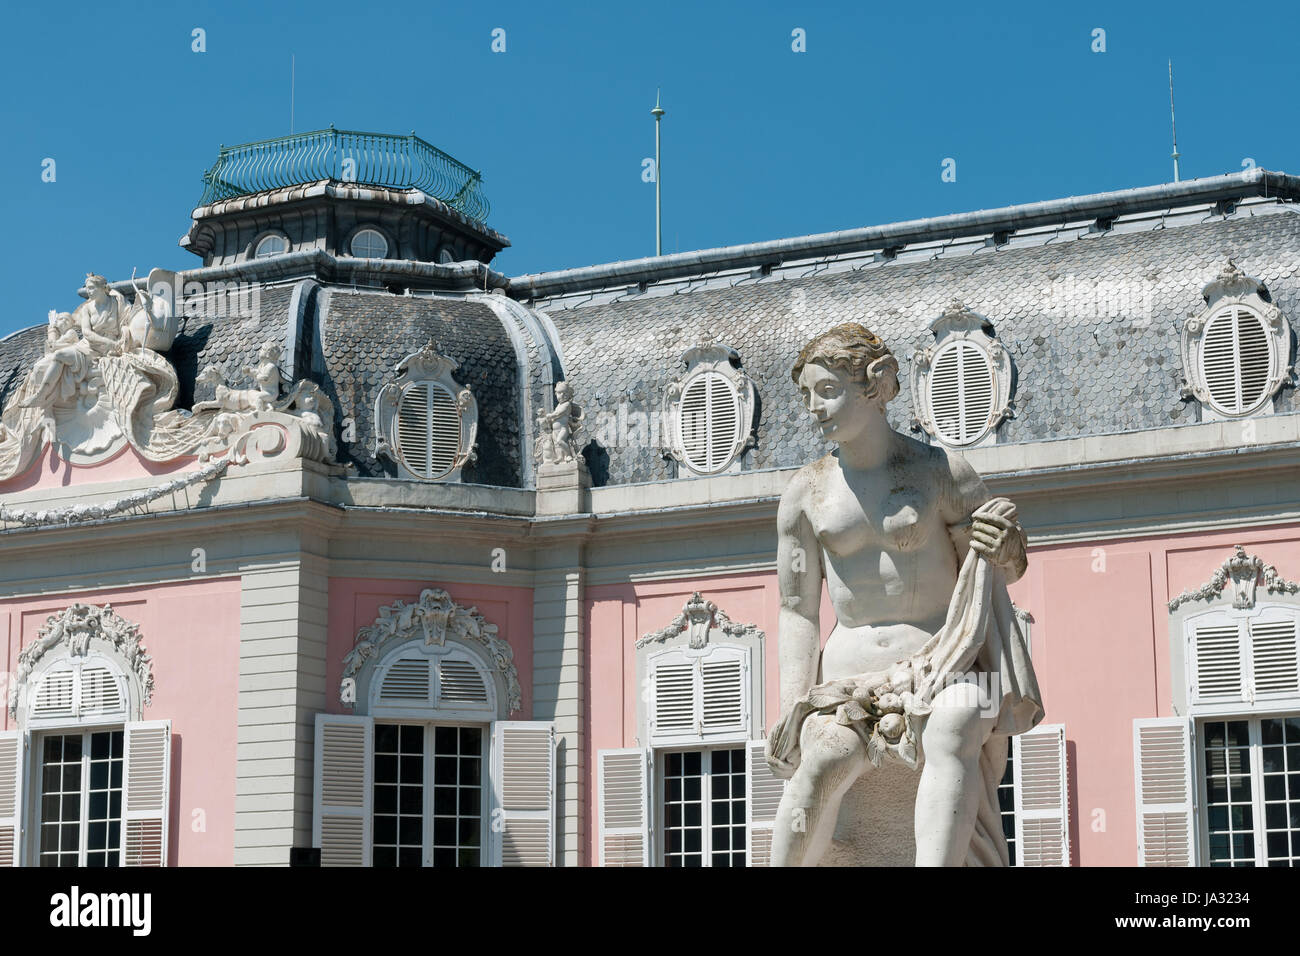 baroque, germany, german federal republic, style of construction, architecture, Stock Photo